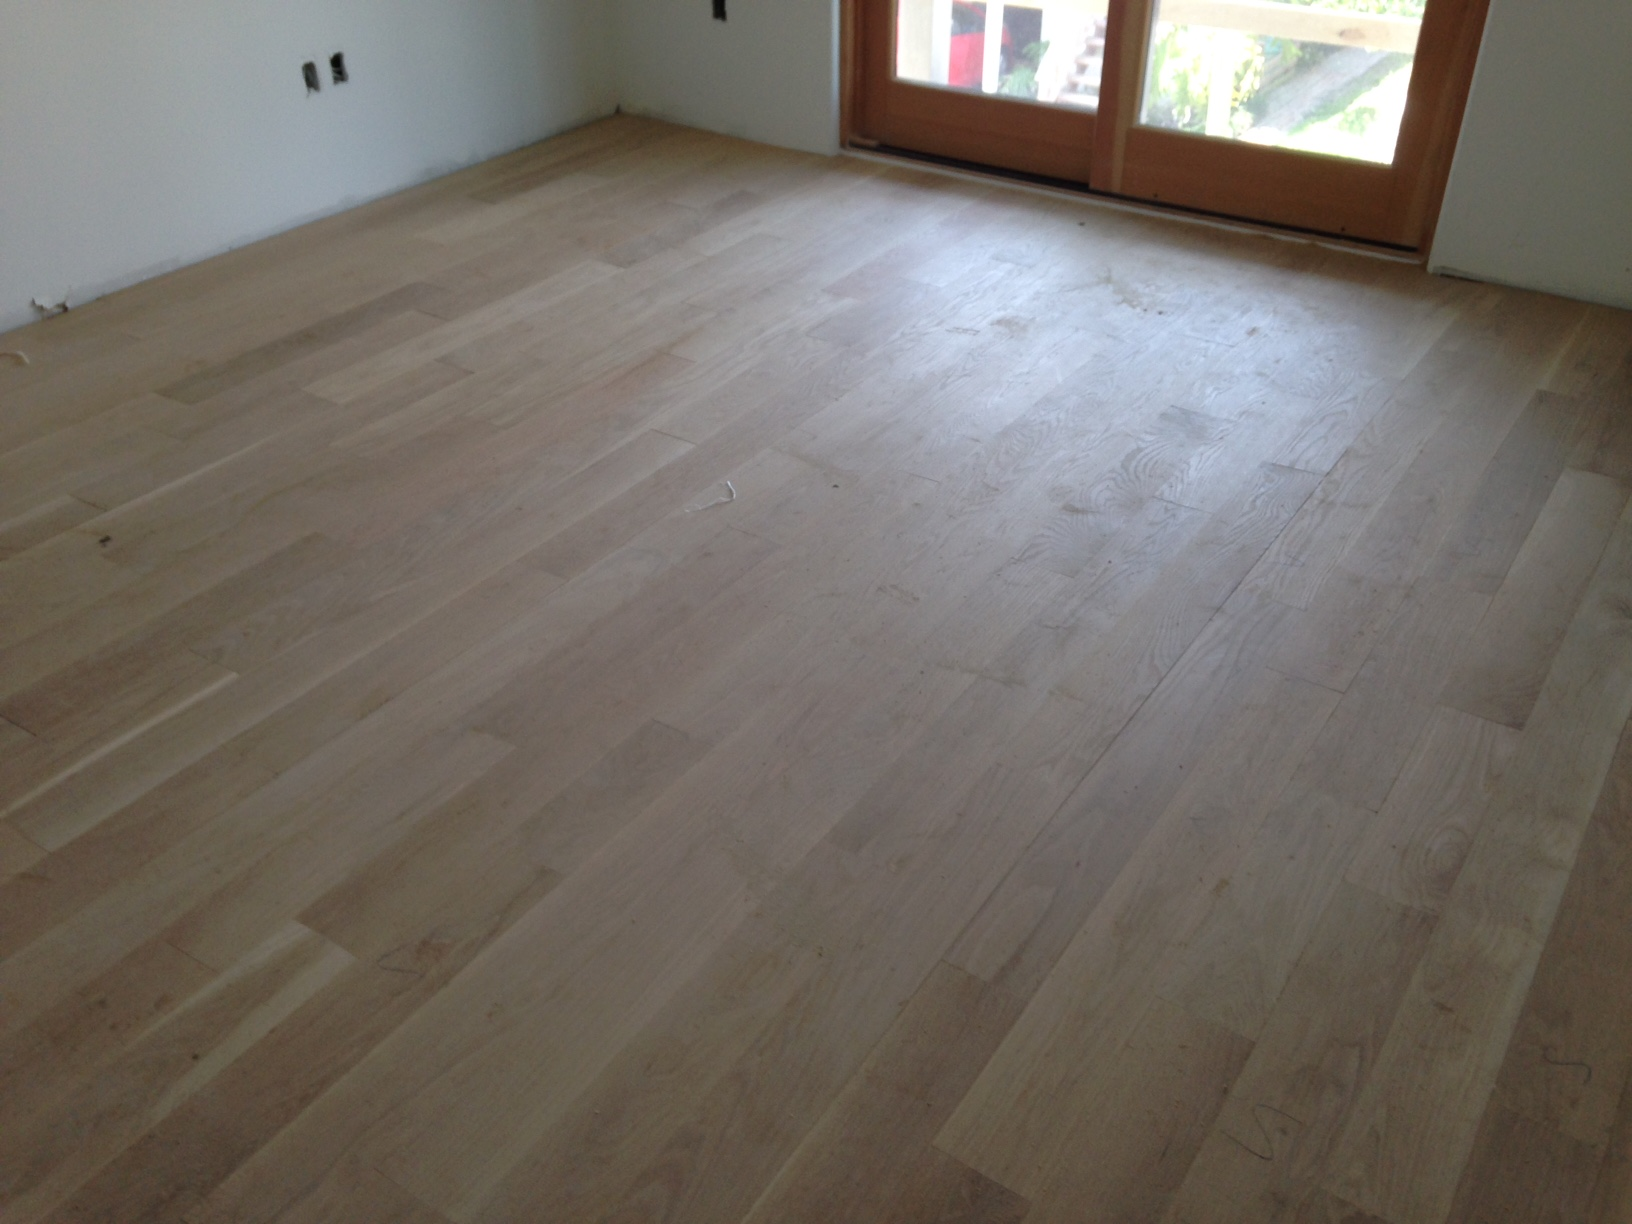 New Solid White Oak Flooring In Atlantic Beach Florida. In Law Suite. Dark Brown Cabinets. Rectangular Coffee Table. Mascarello Granite. Rustic Table Clock. Chinese Kitchen Cabinets. Double Fireplace. Scrapbook Rooms